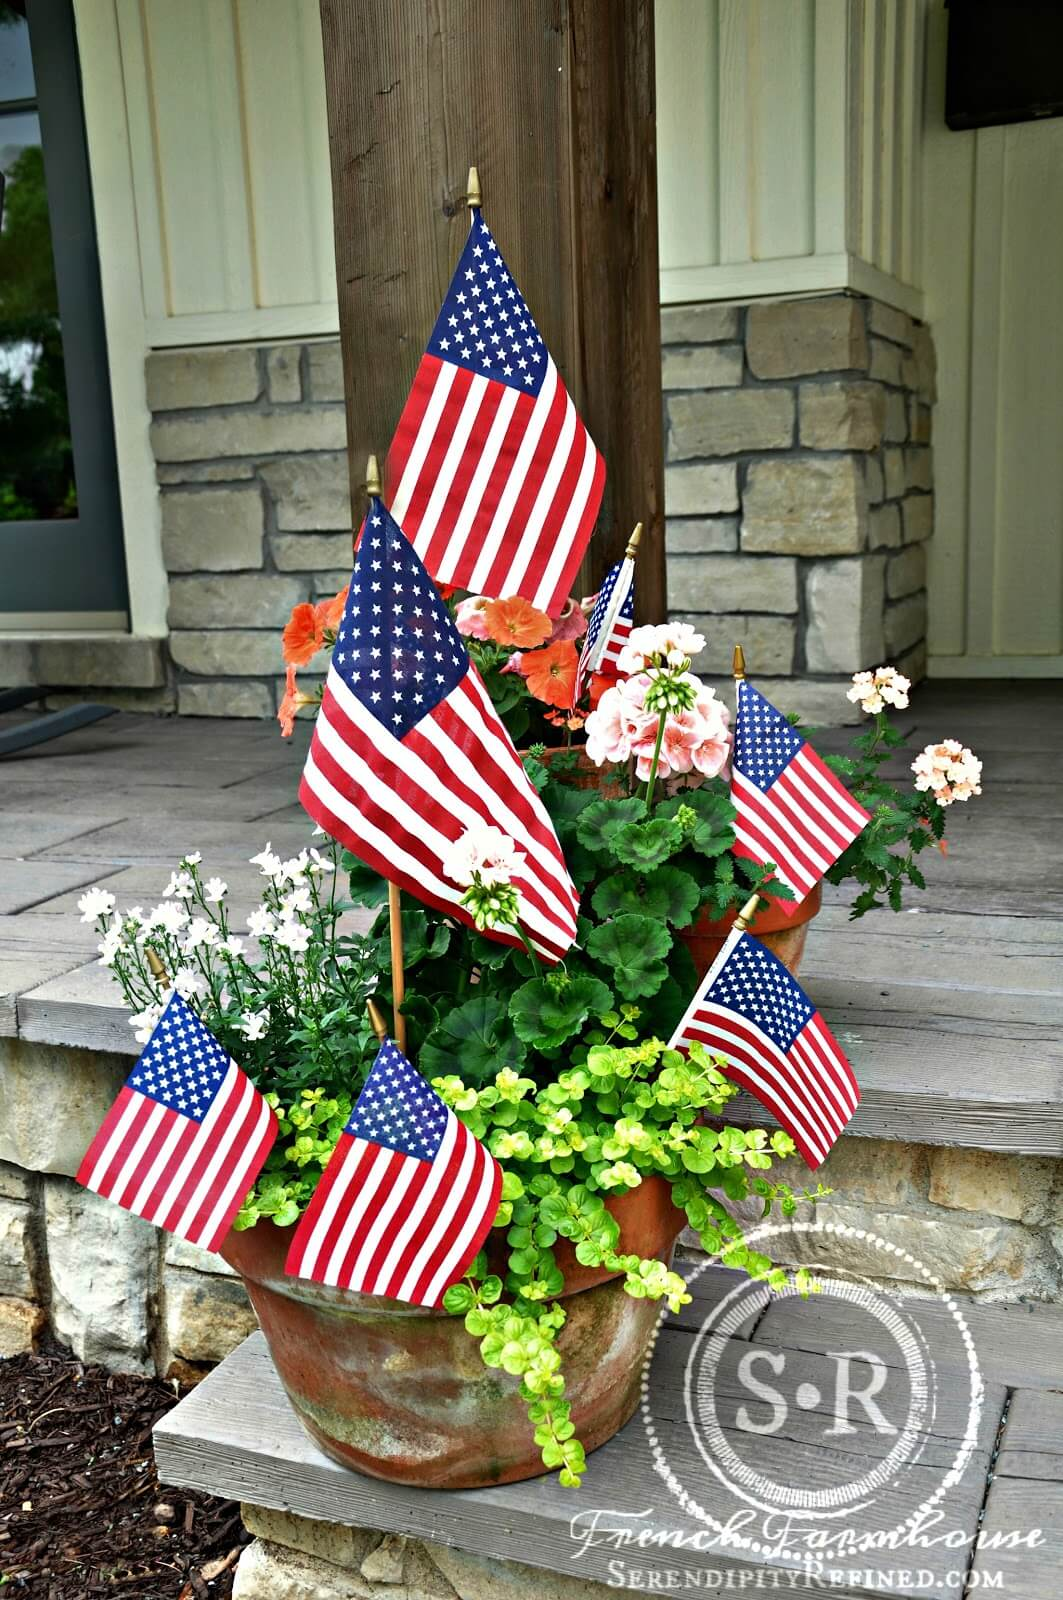 70 Best Memorial Day Decorations Ideas with Images 2020